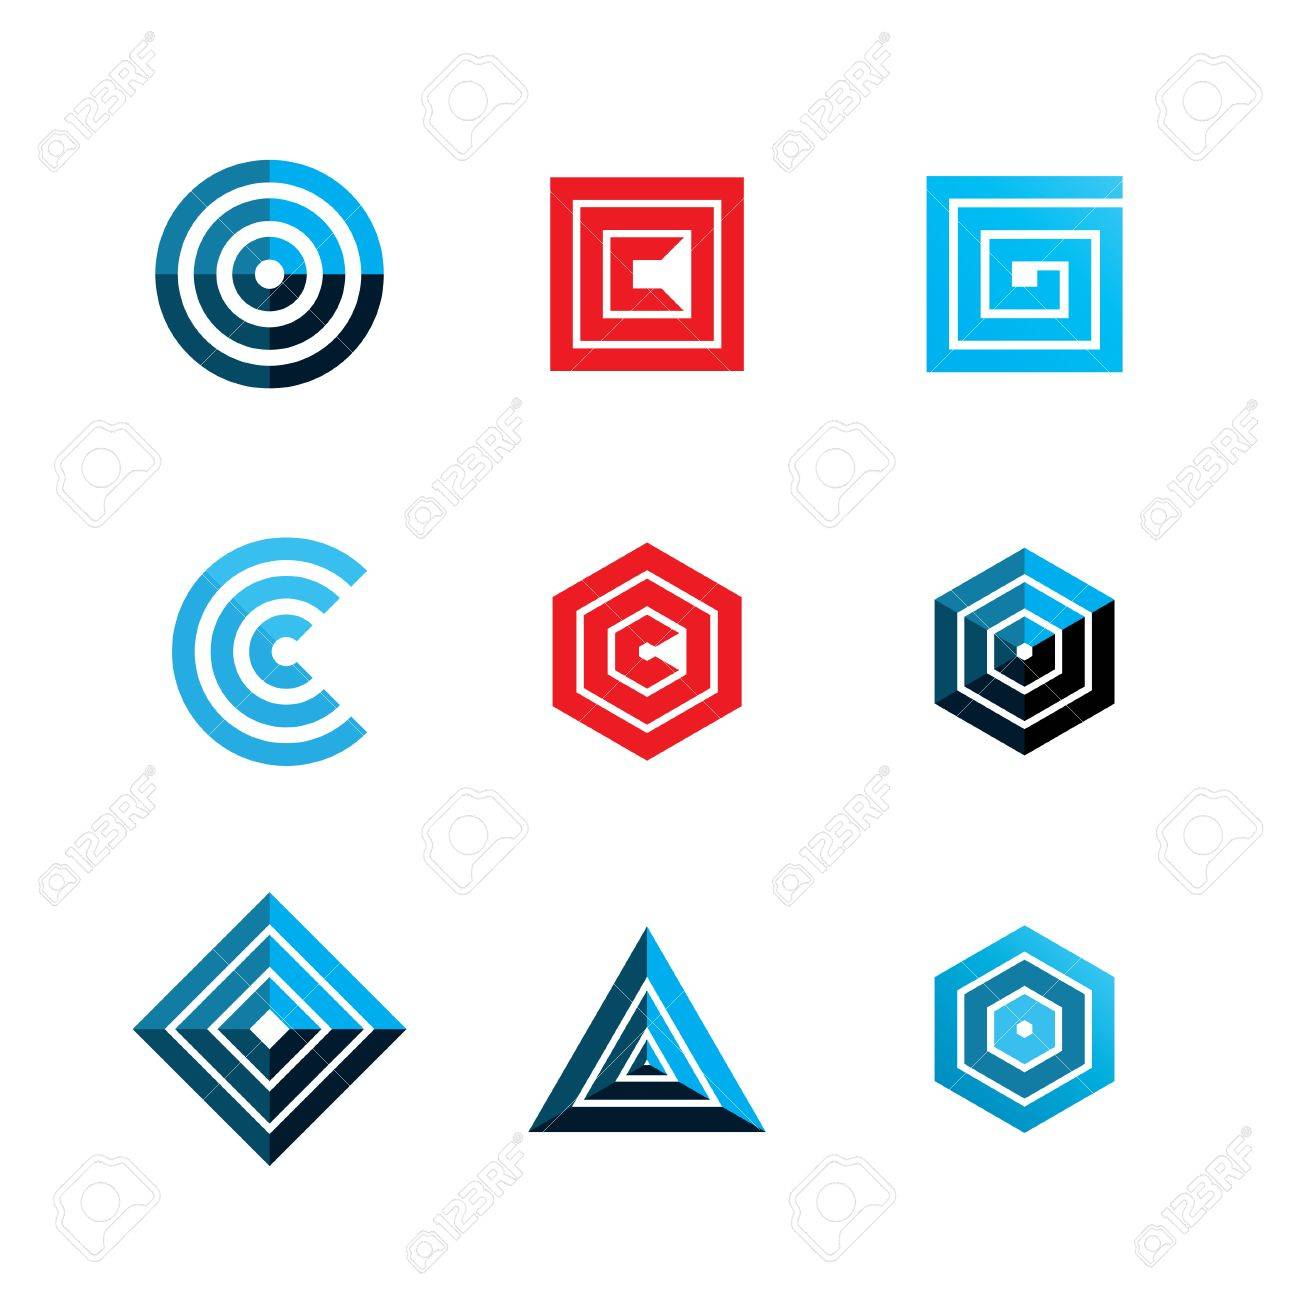 abstract geometric shapes template logo design vector eps8 royalty